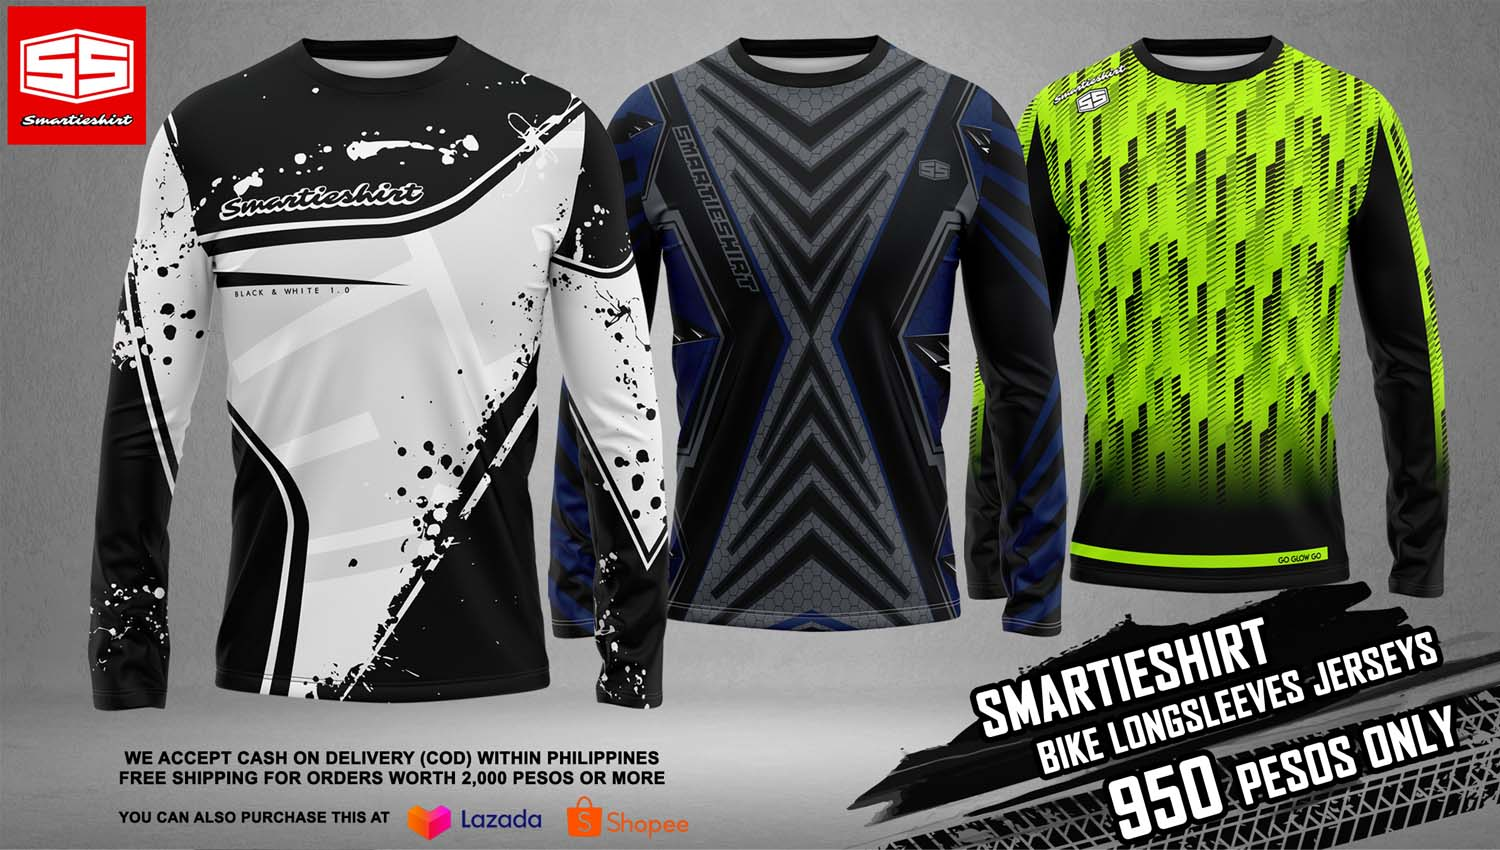 Smartieshirt Long Sleeves for motorcycles and bike jerseys